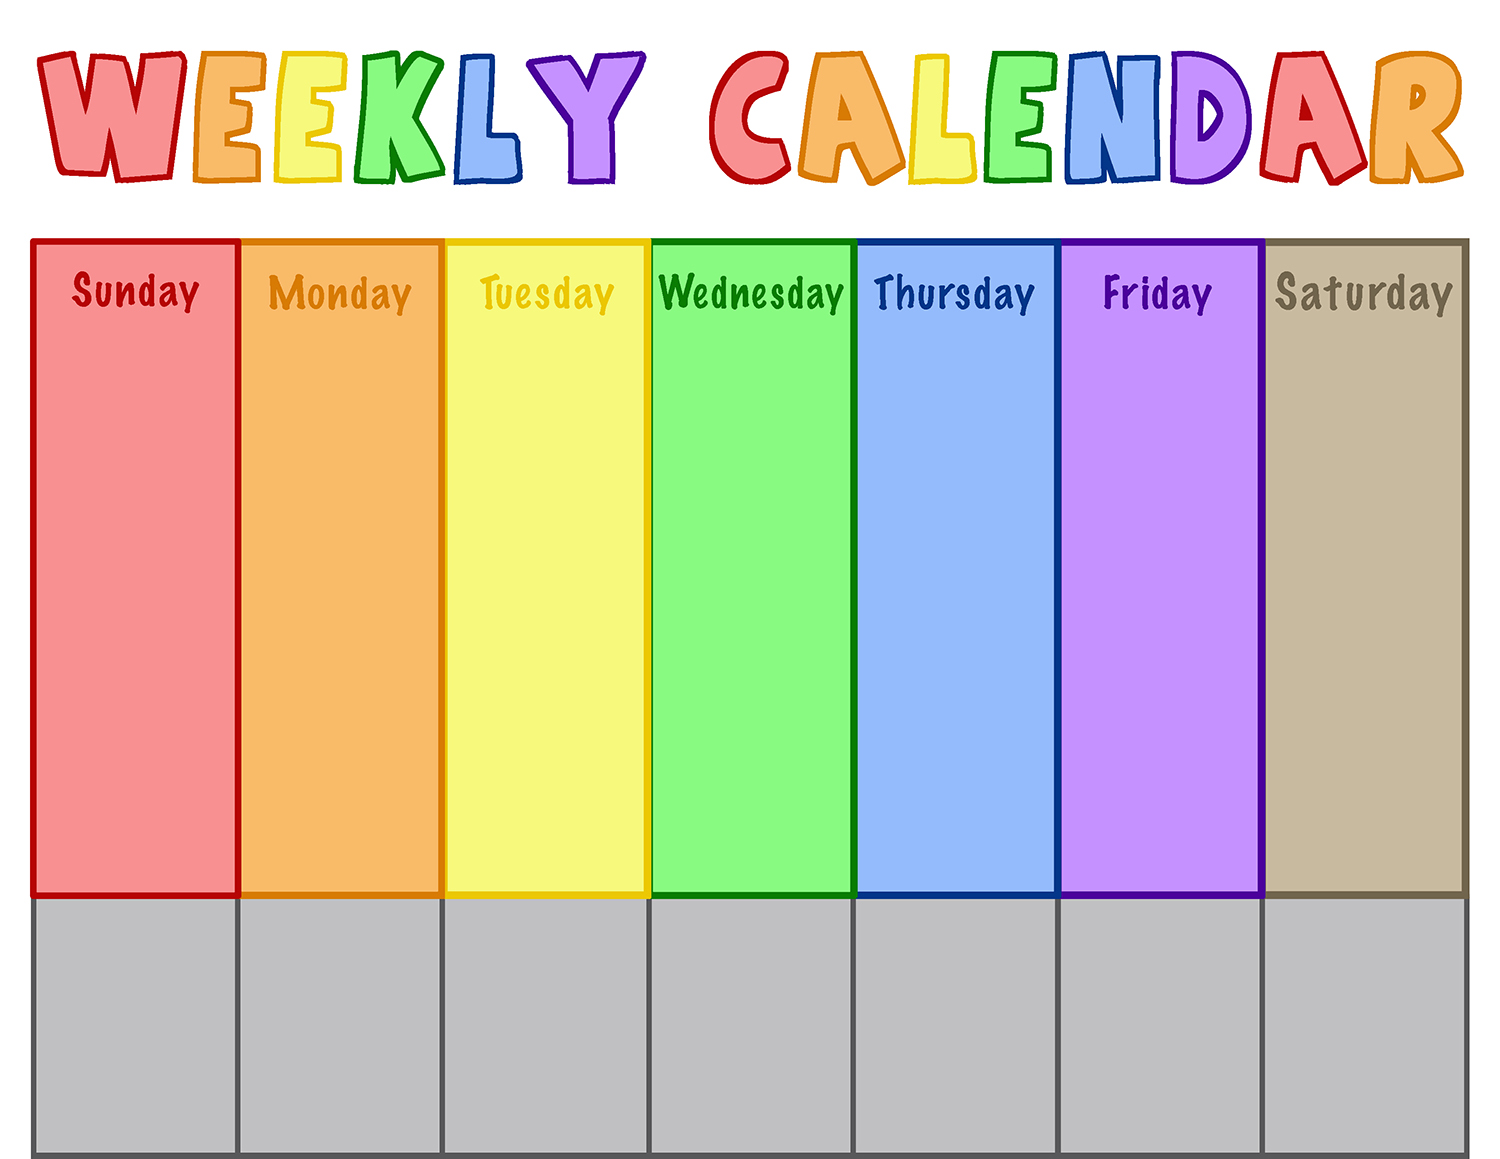 Weekly Calendar Download weekly calendar 2017 and 2018